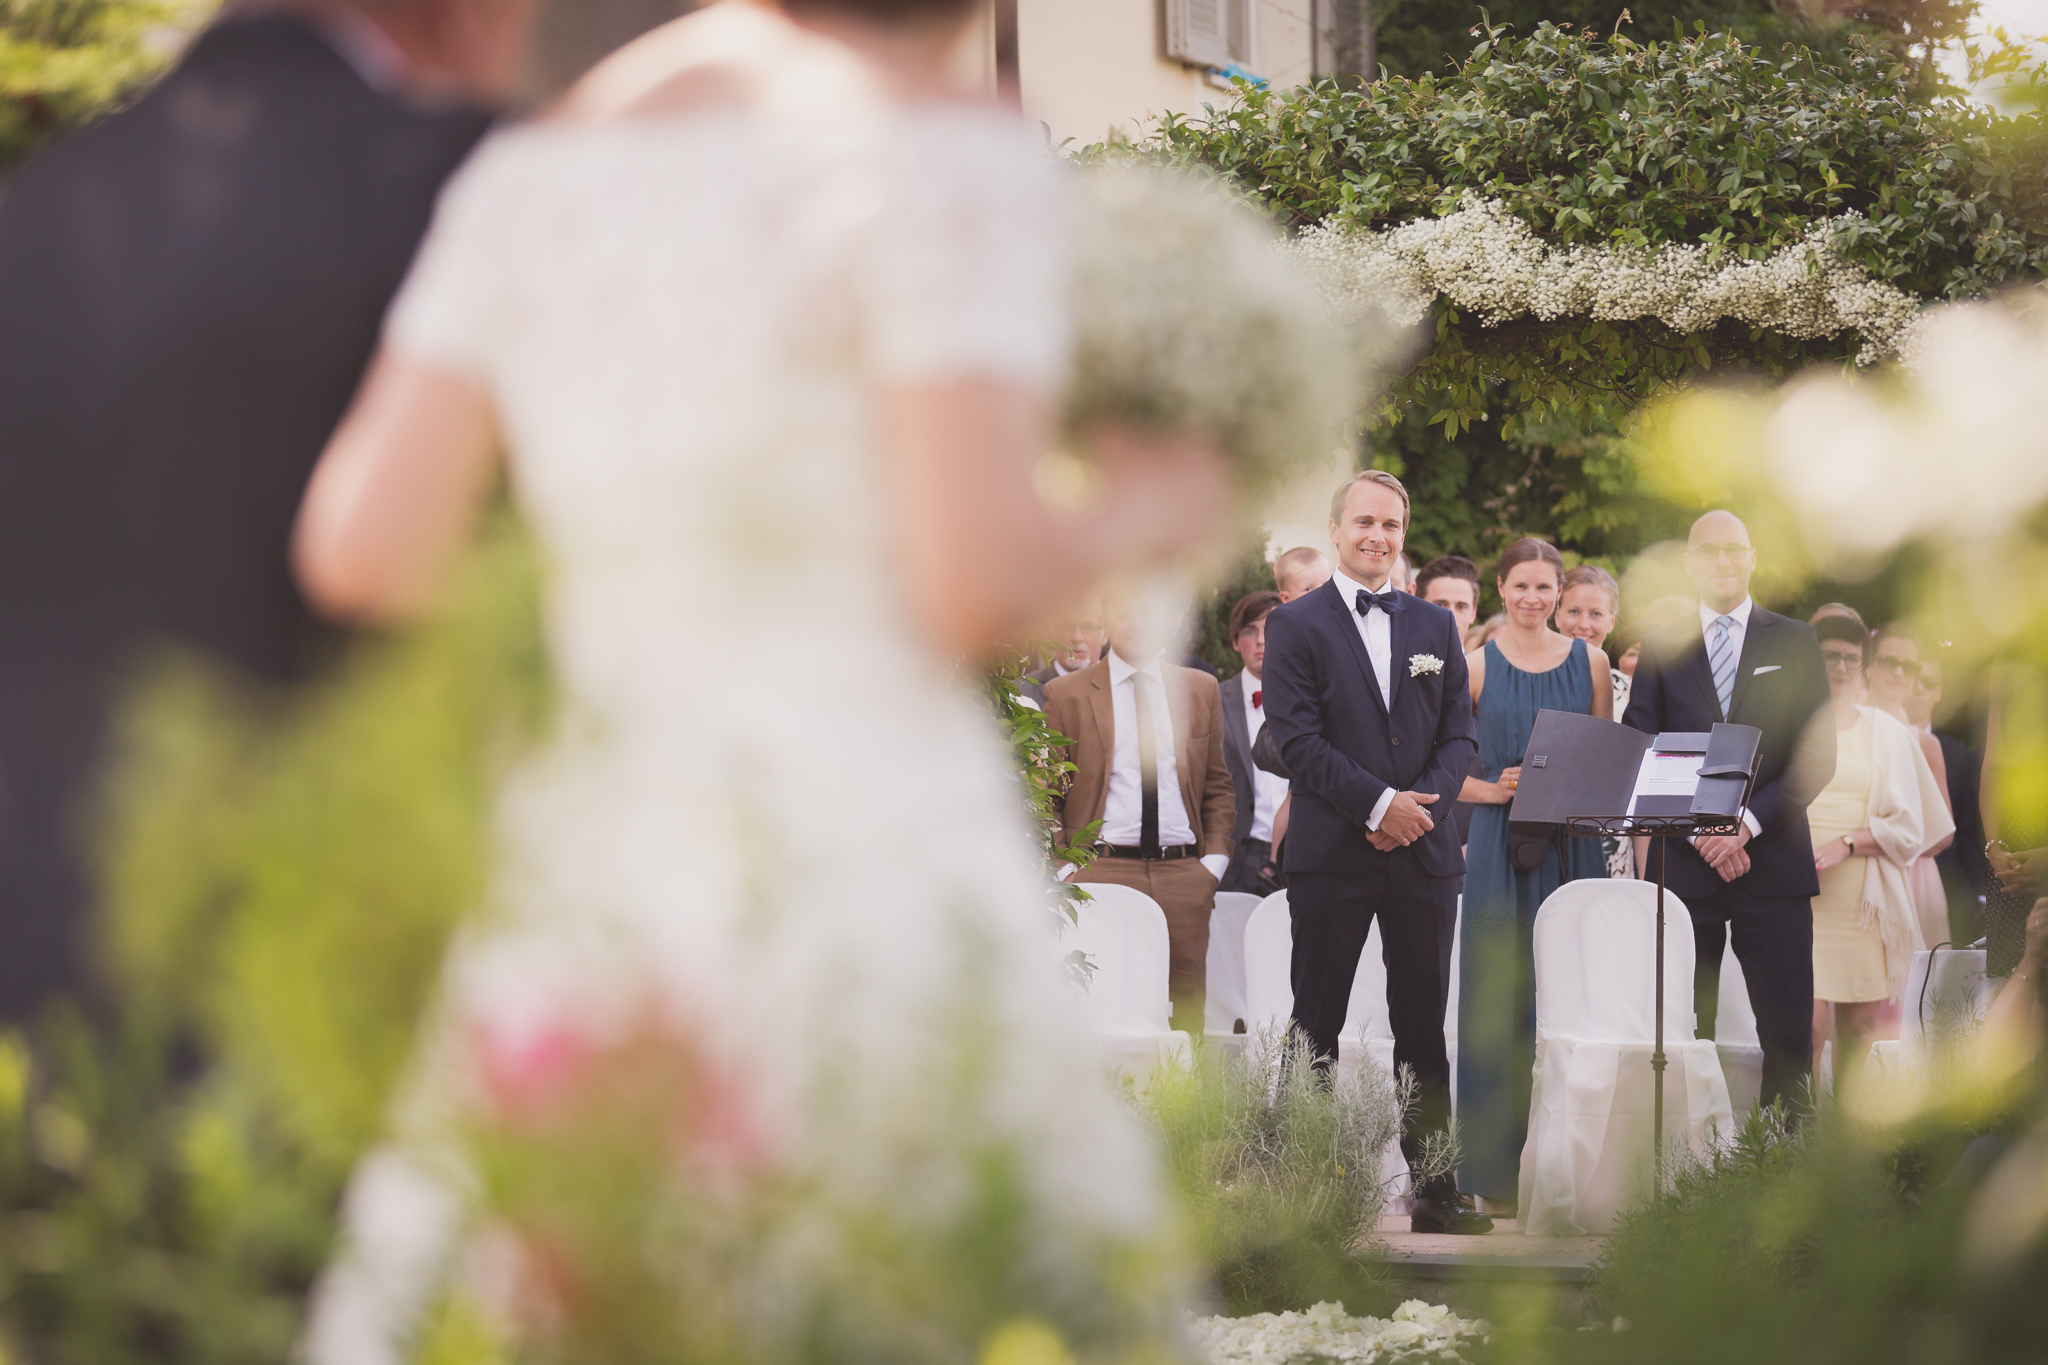 Cathrine+Andreas_Bryllup-46